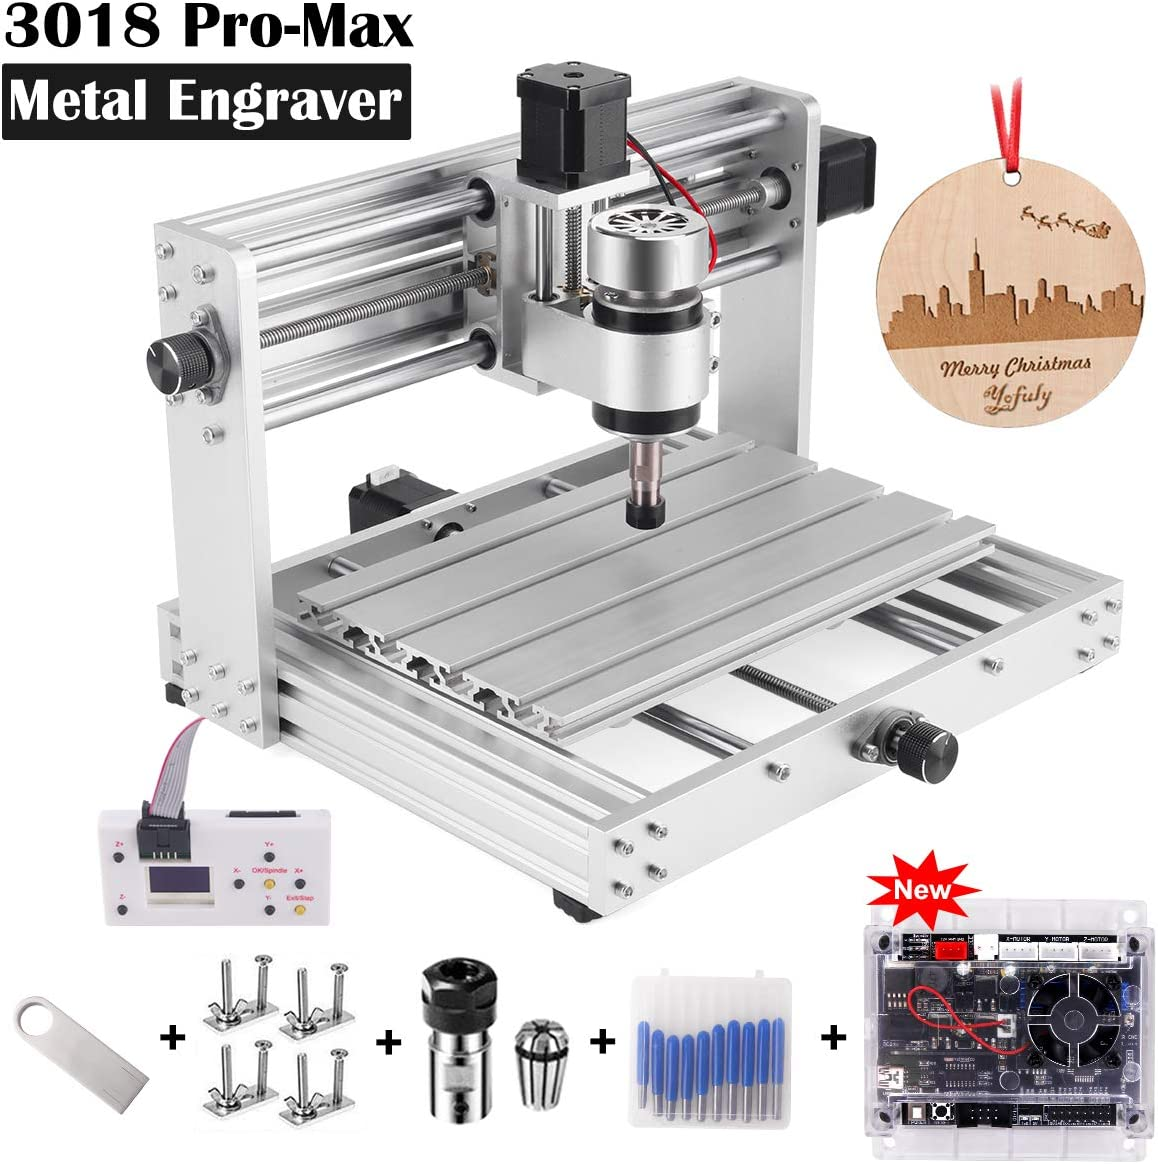 CNC 3018Pro-MAX Metal Router Kit GRBL Control with 200W Spindle, 3 Axis PCB Wood Carving Milling Engraving Machine with Offline Controller, DIY Wood Router Support Laser Engraving